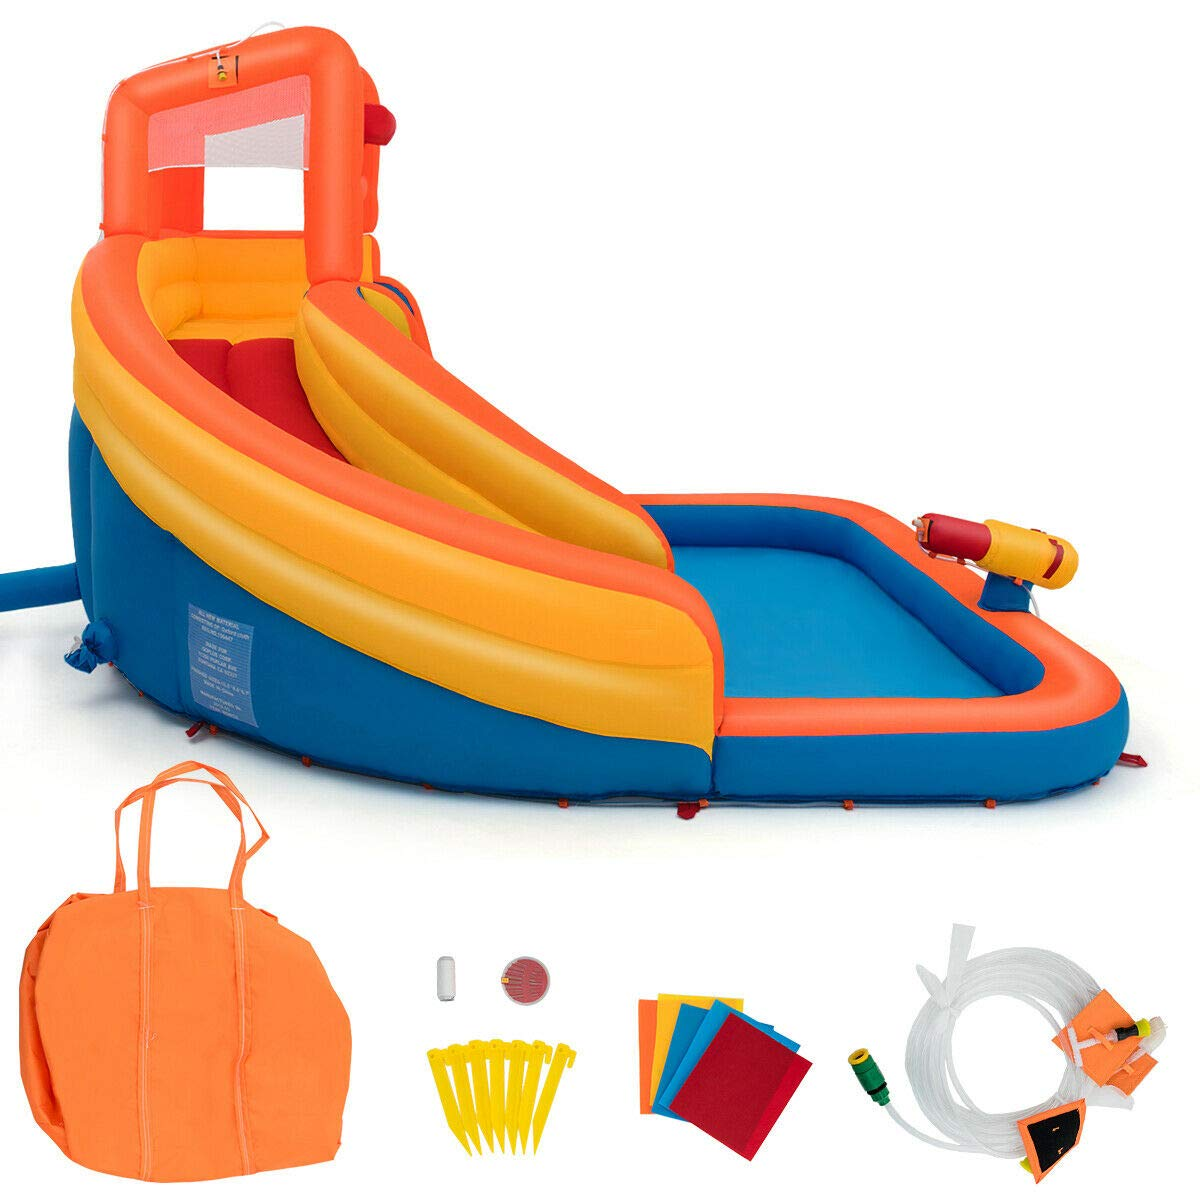 Heize Best Price Orange Inflatable Splash Water Bouncer Slide Bounce House w/ Climbing Wall & Water Hose Splash Pool(U.S. Stock) by Heize Best Price (Image #3)